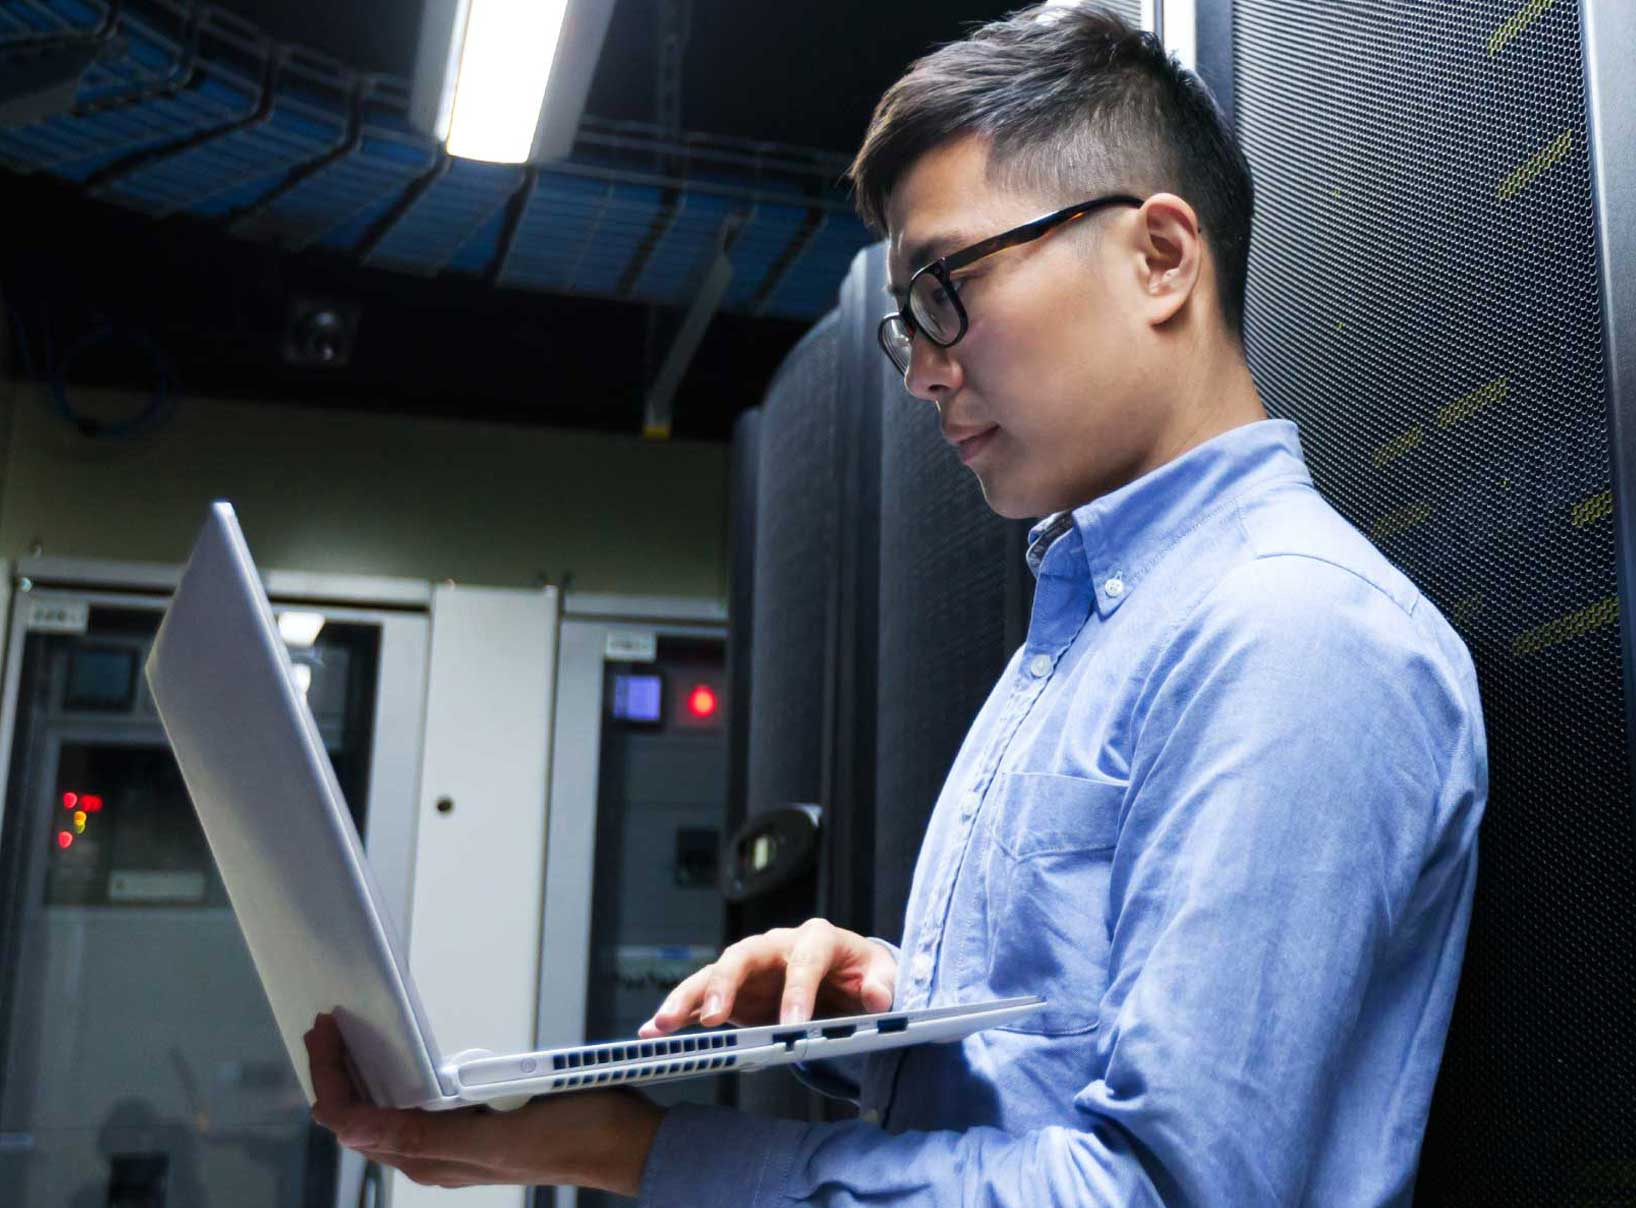 photo of man holding laptop standing in server room